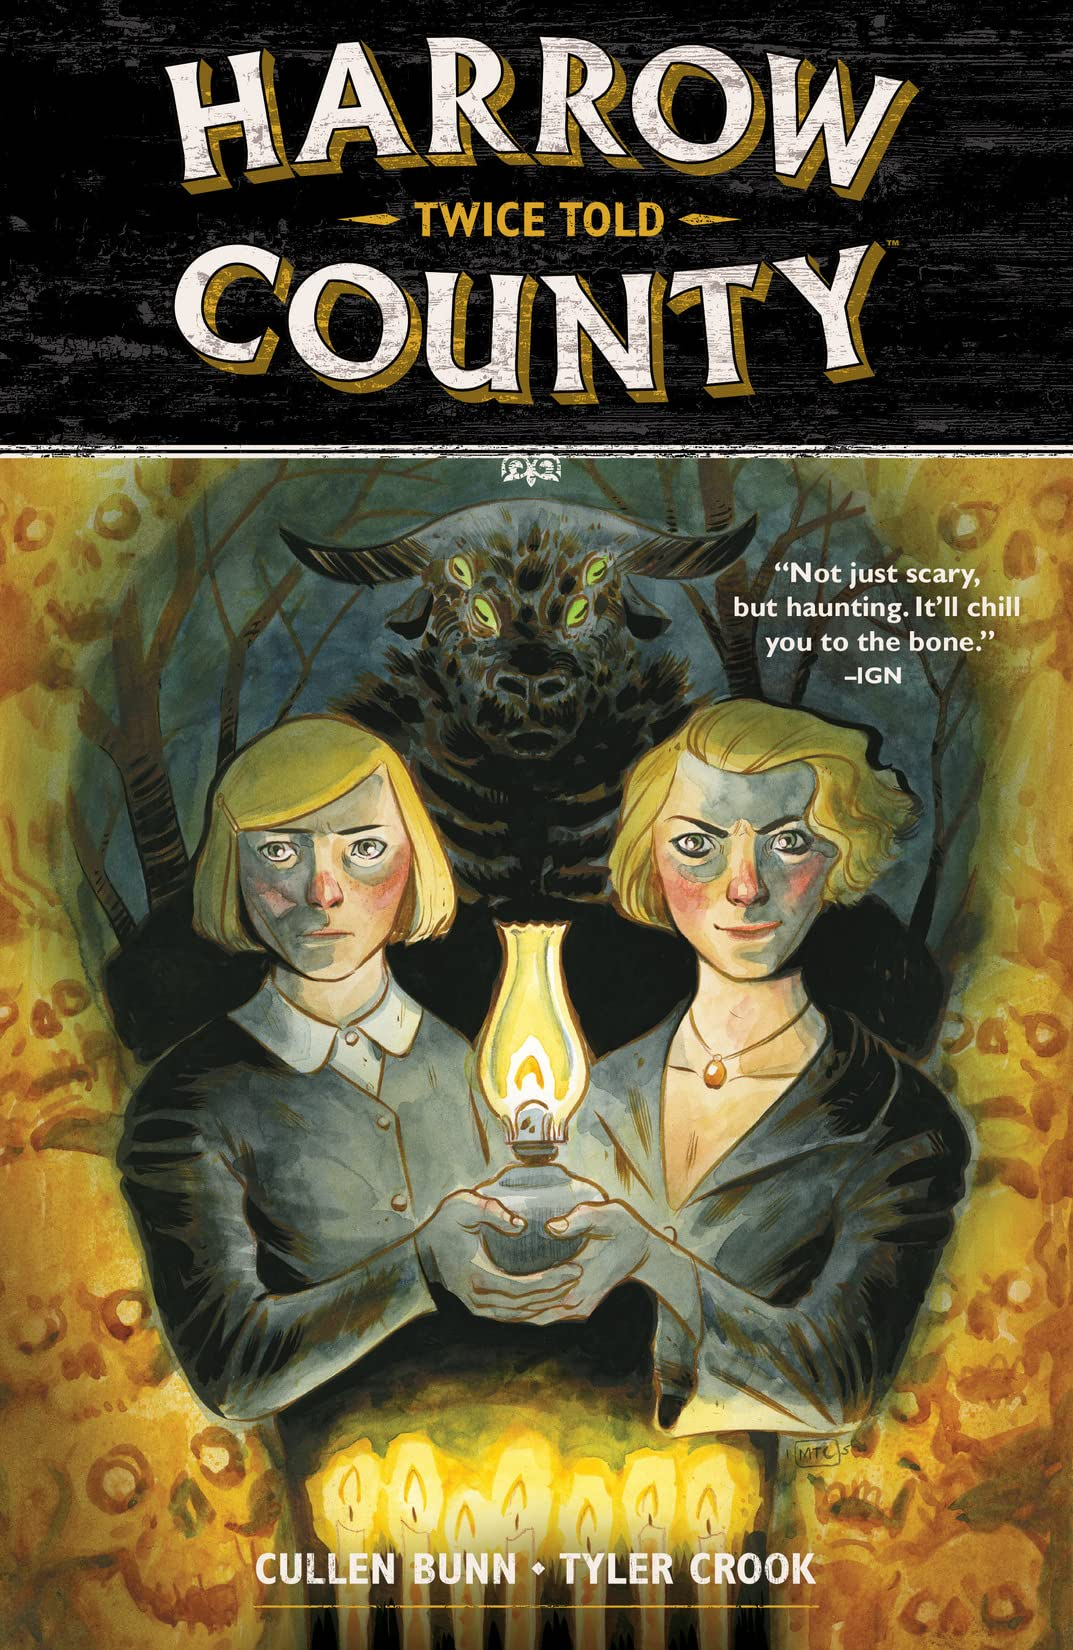 Harrow County Vol. 2